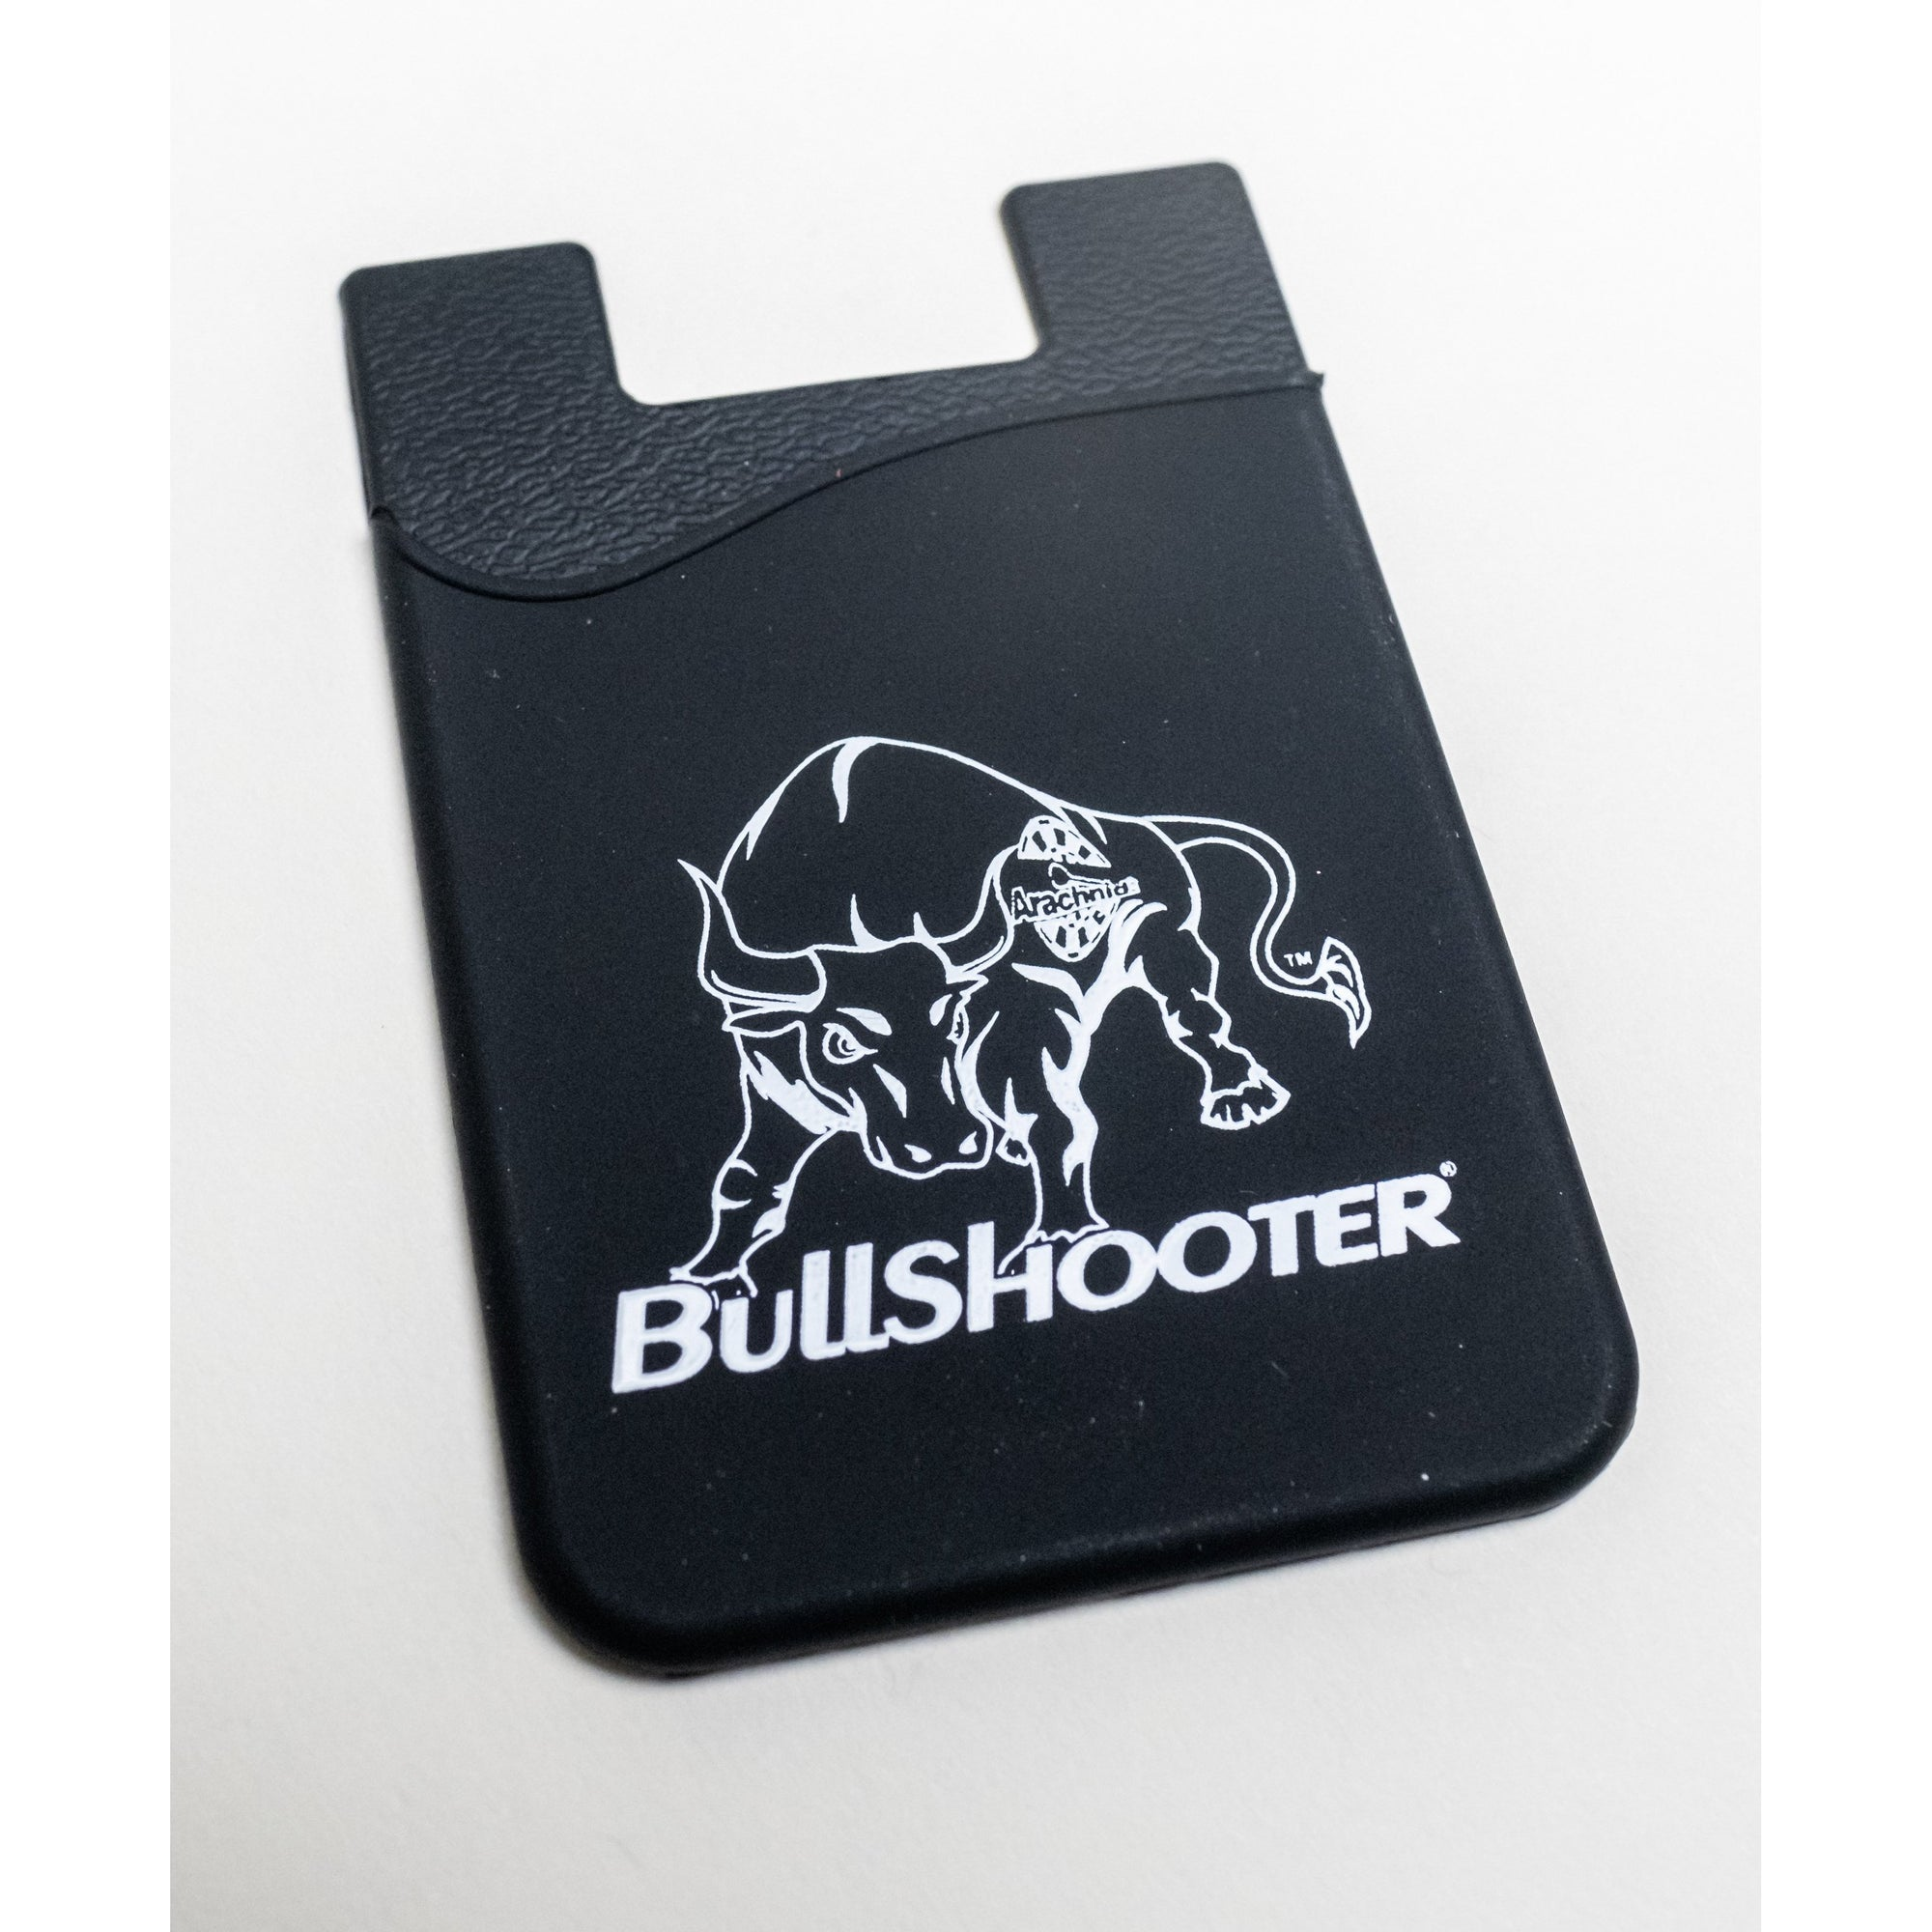 Phone Card Holder